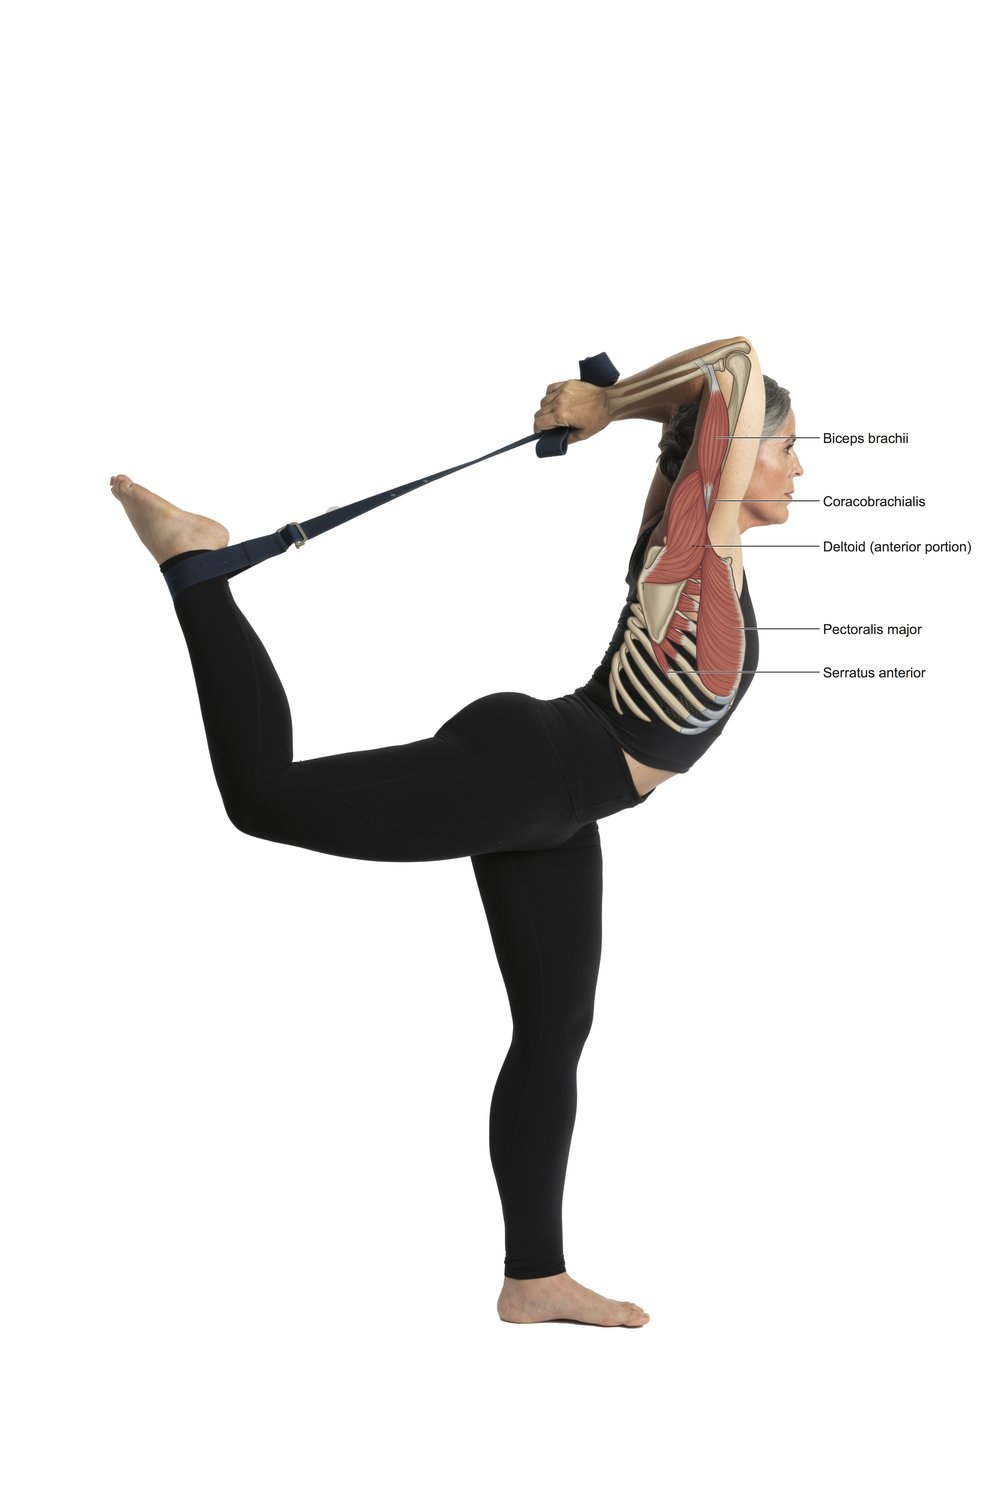 Figure 16_Shoulder flexion in dancer.jpg